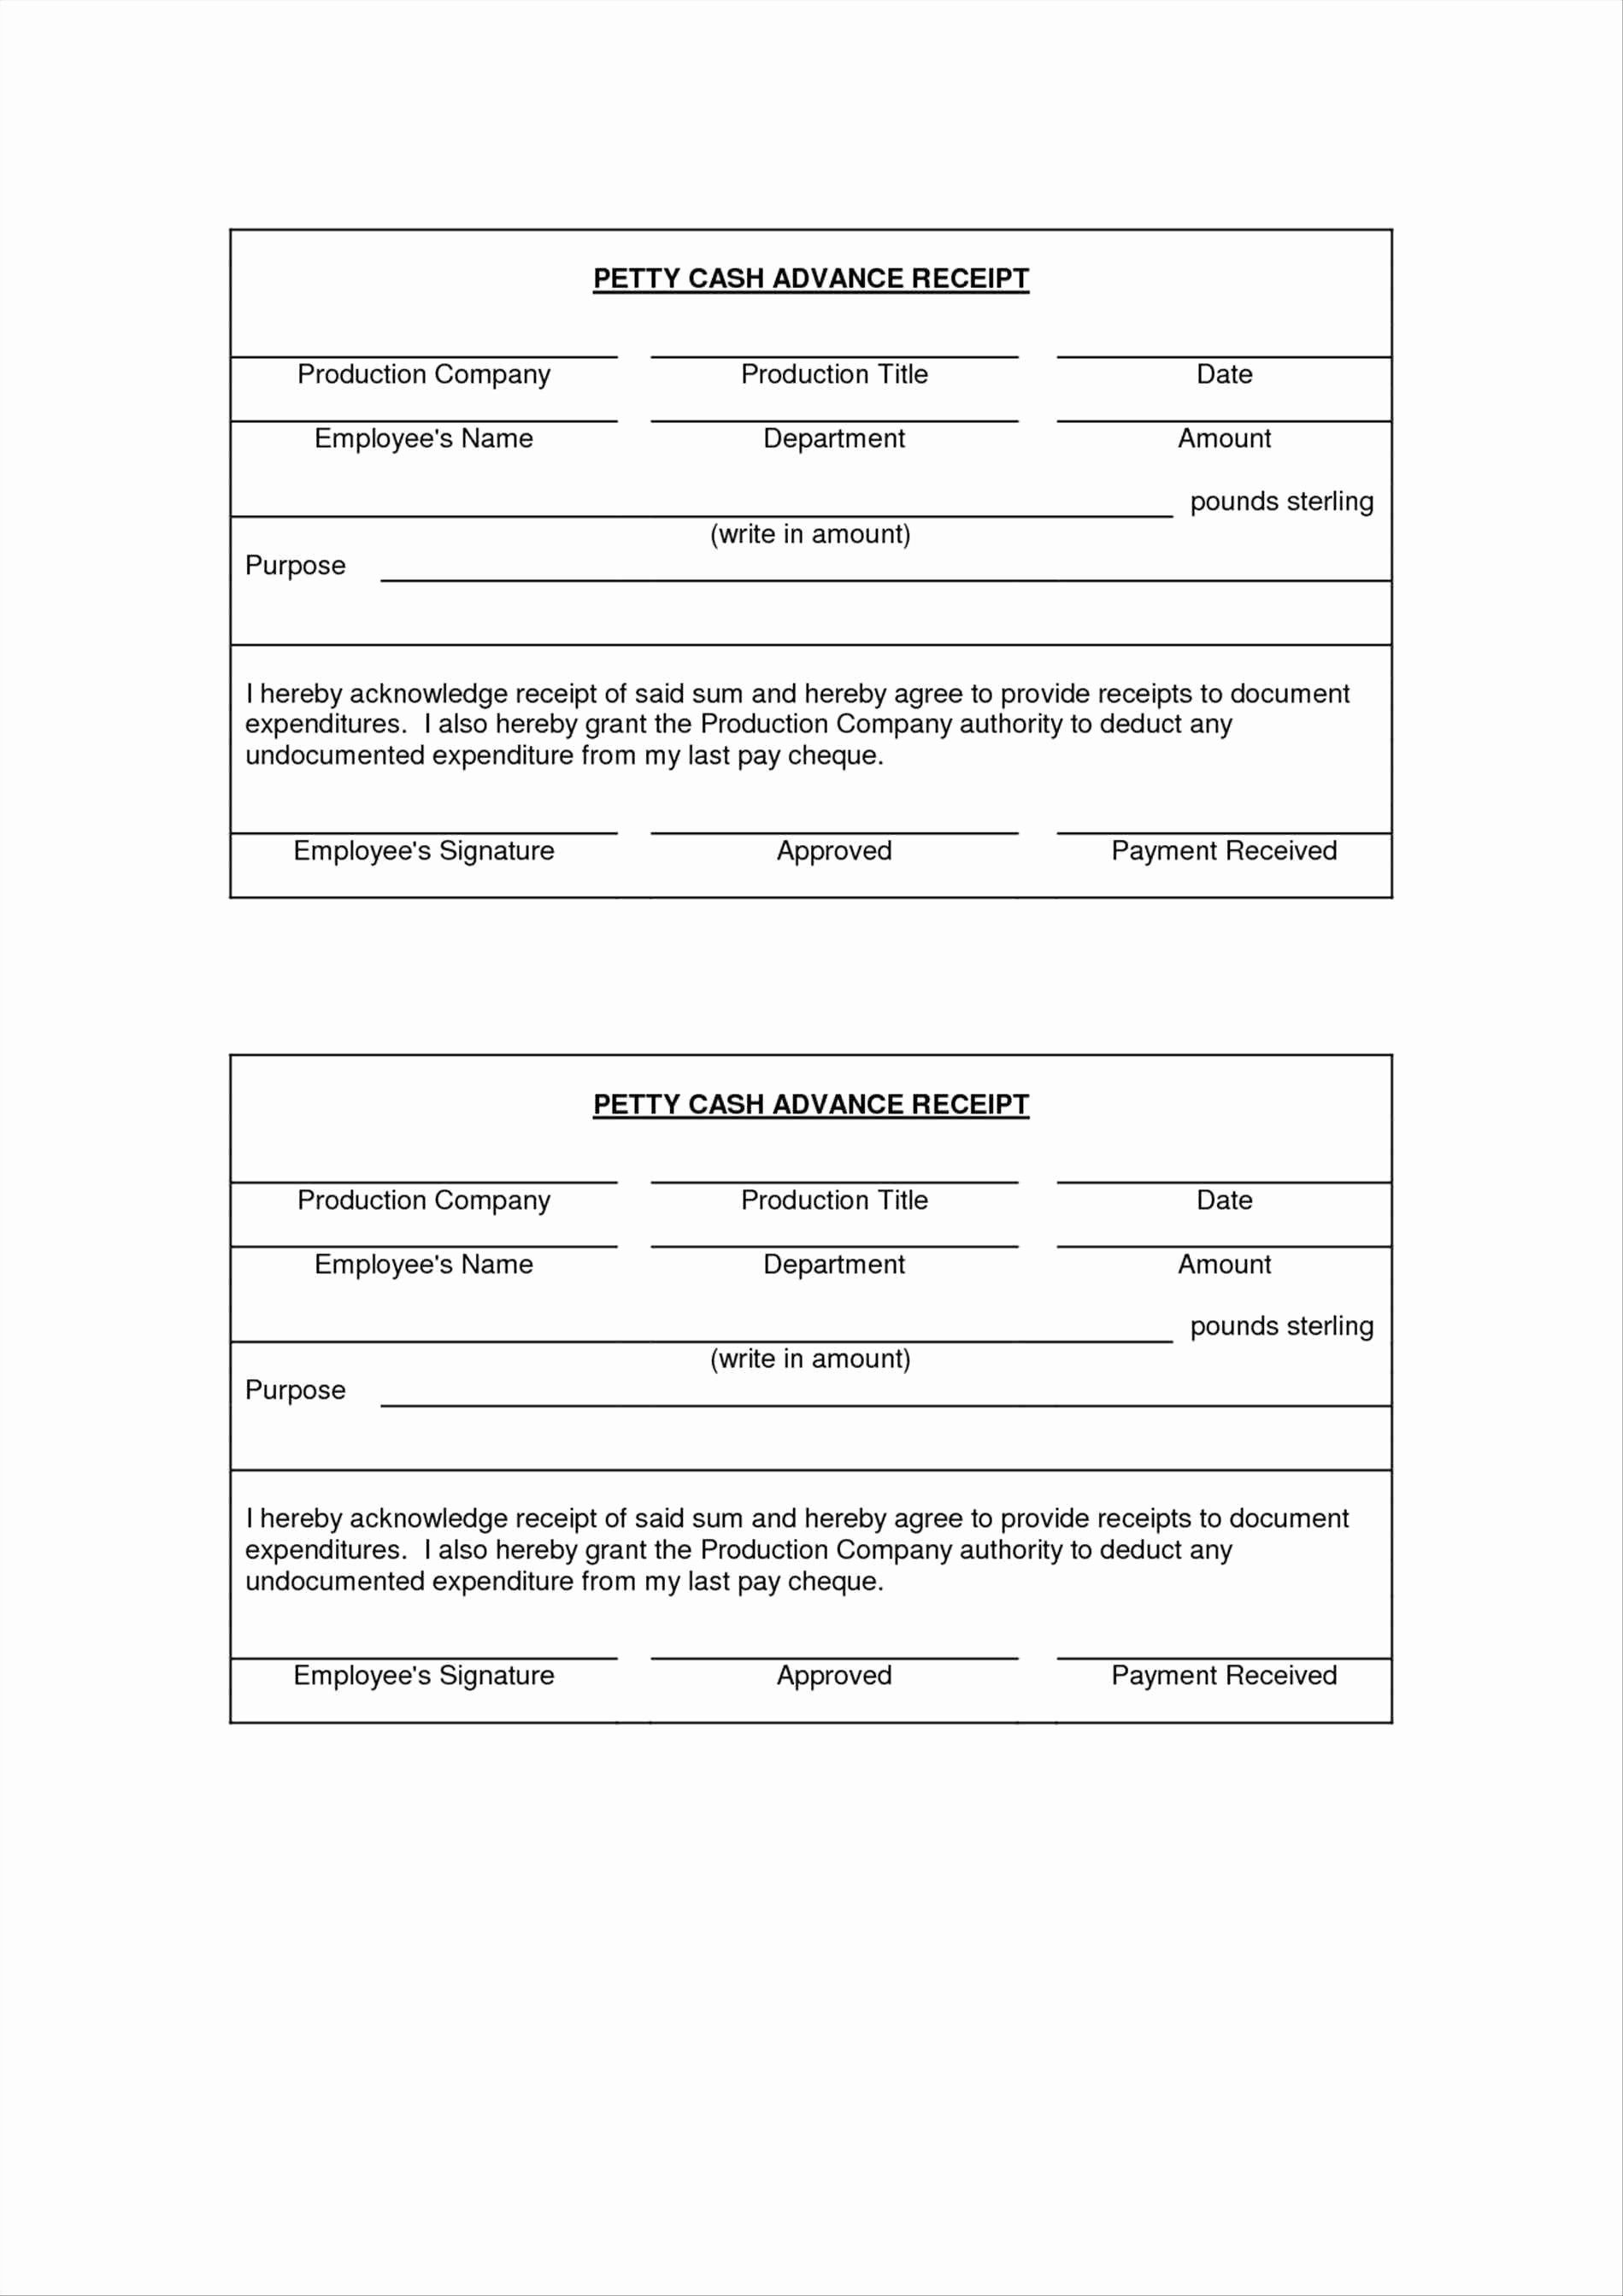 Travel Advance Request Form Template Luxury Cash Advance Request Form Template In 2020 Loans For Bad Credit Cash Advance Loans Templates